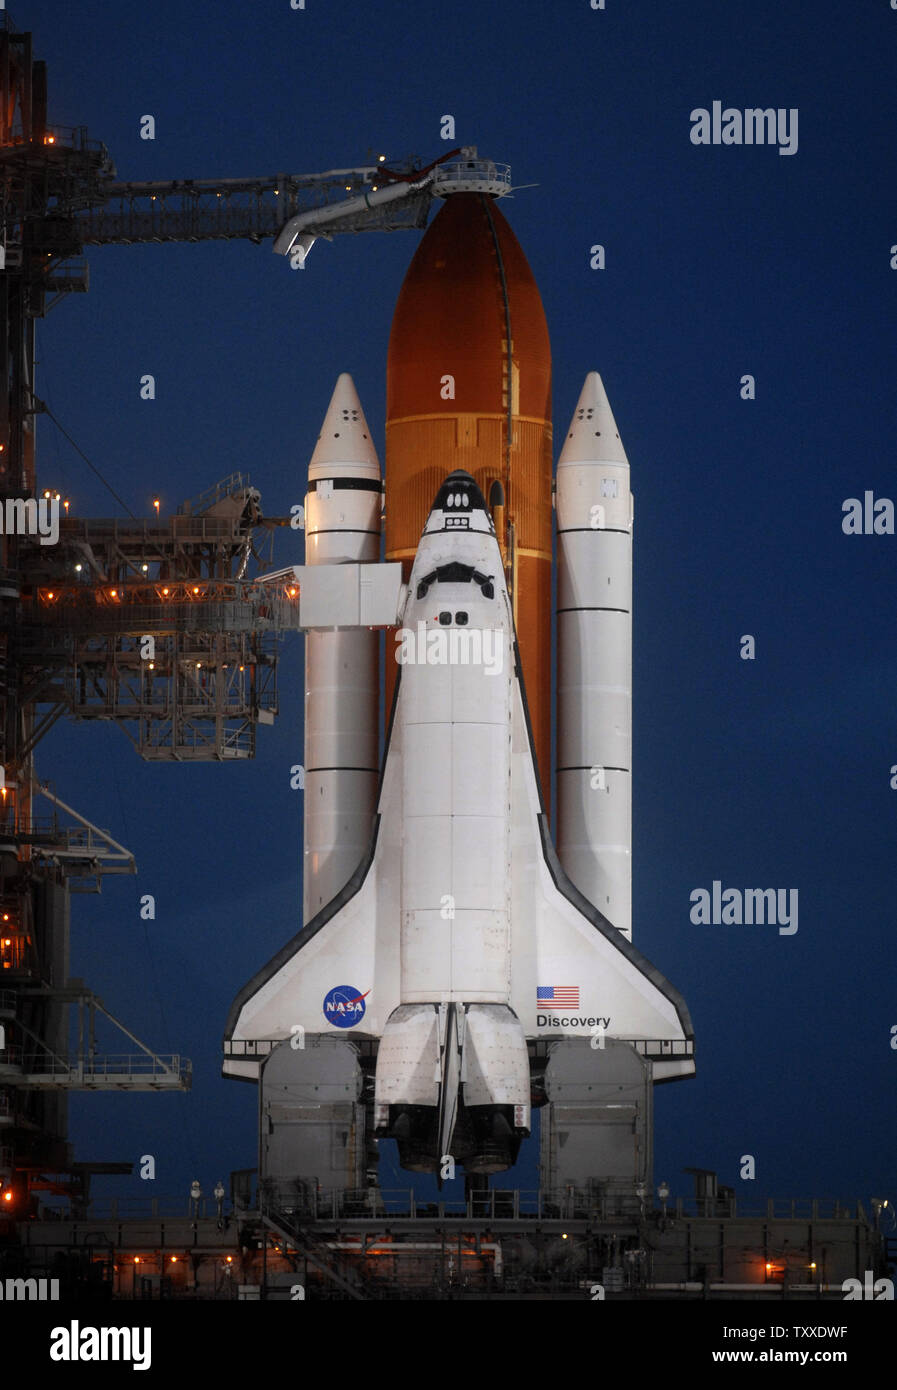 NASA's Space Shuttle Discovery sits poised for launch on